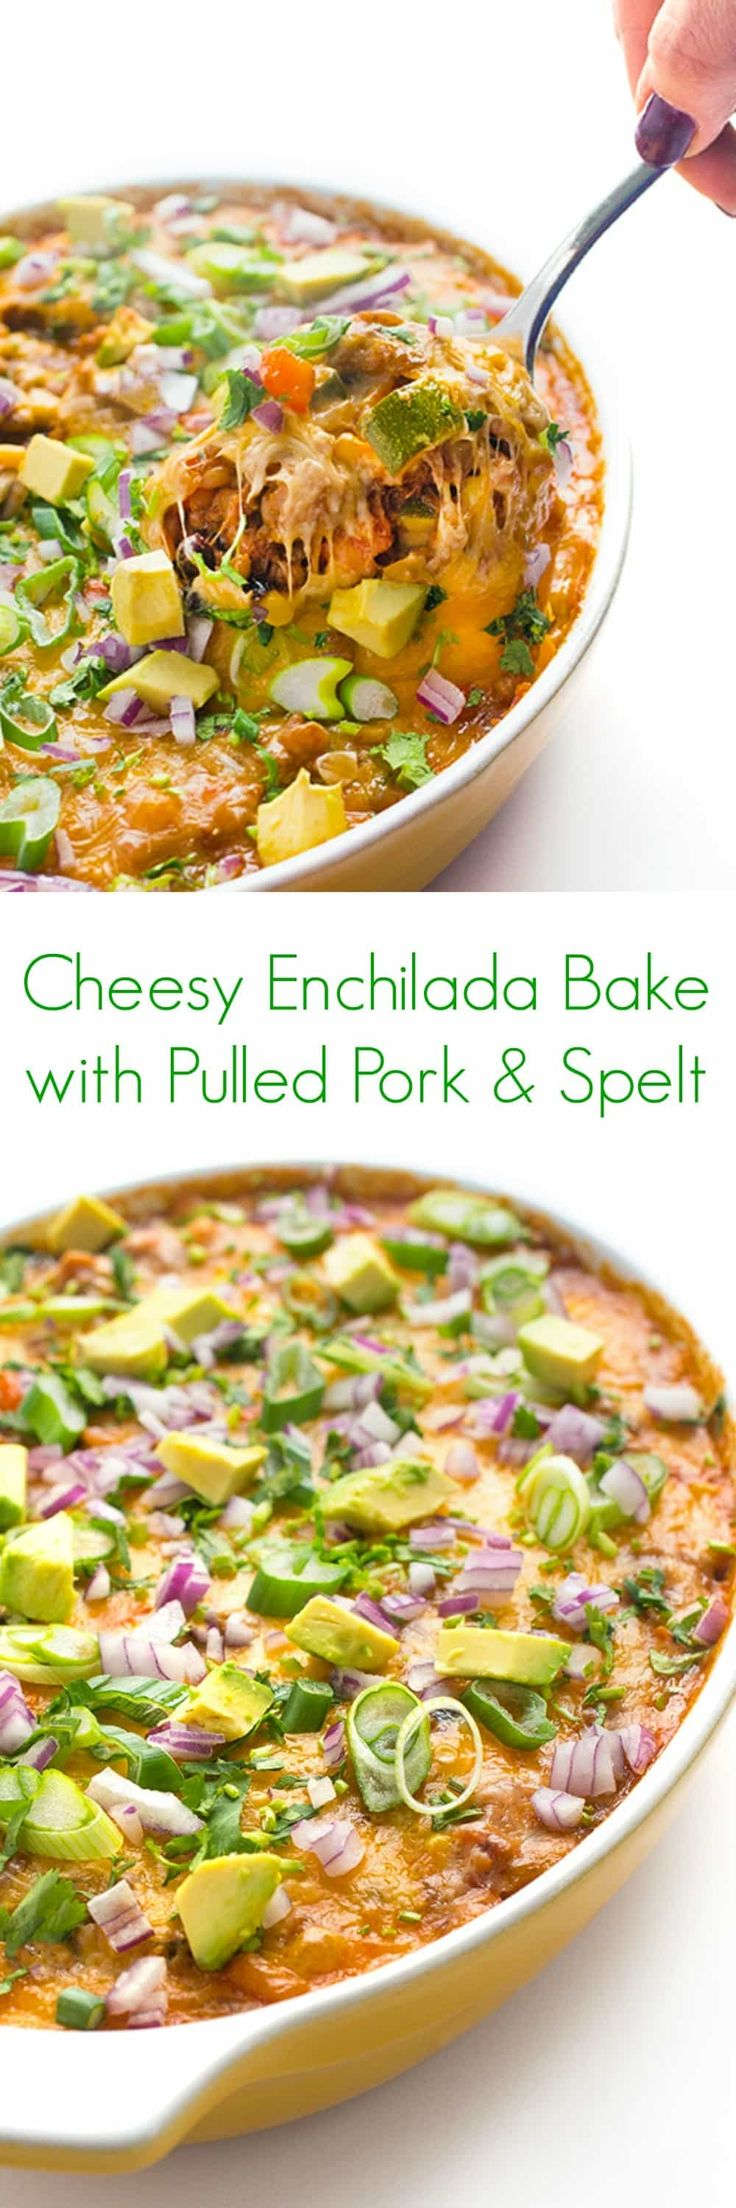 Cheesy Enchilada Bake with Pulled Pork and Spelt Recipe - An easy, healthy dinner that is perfect for serving a large crowd! - The Lemon Bowl